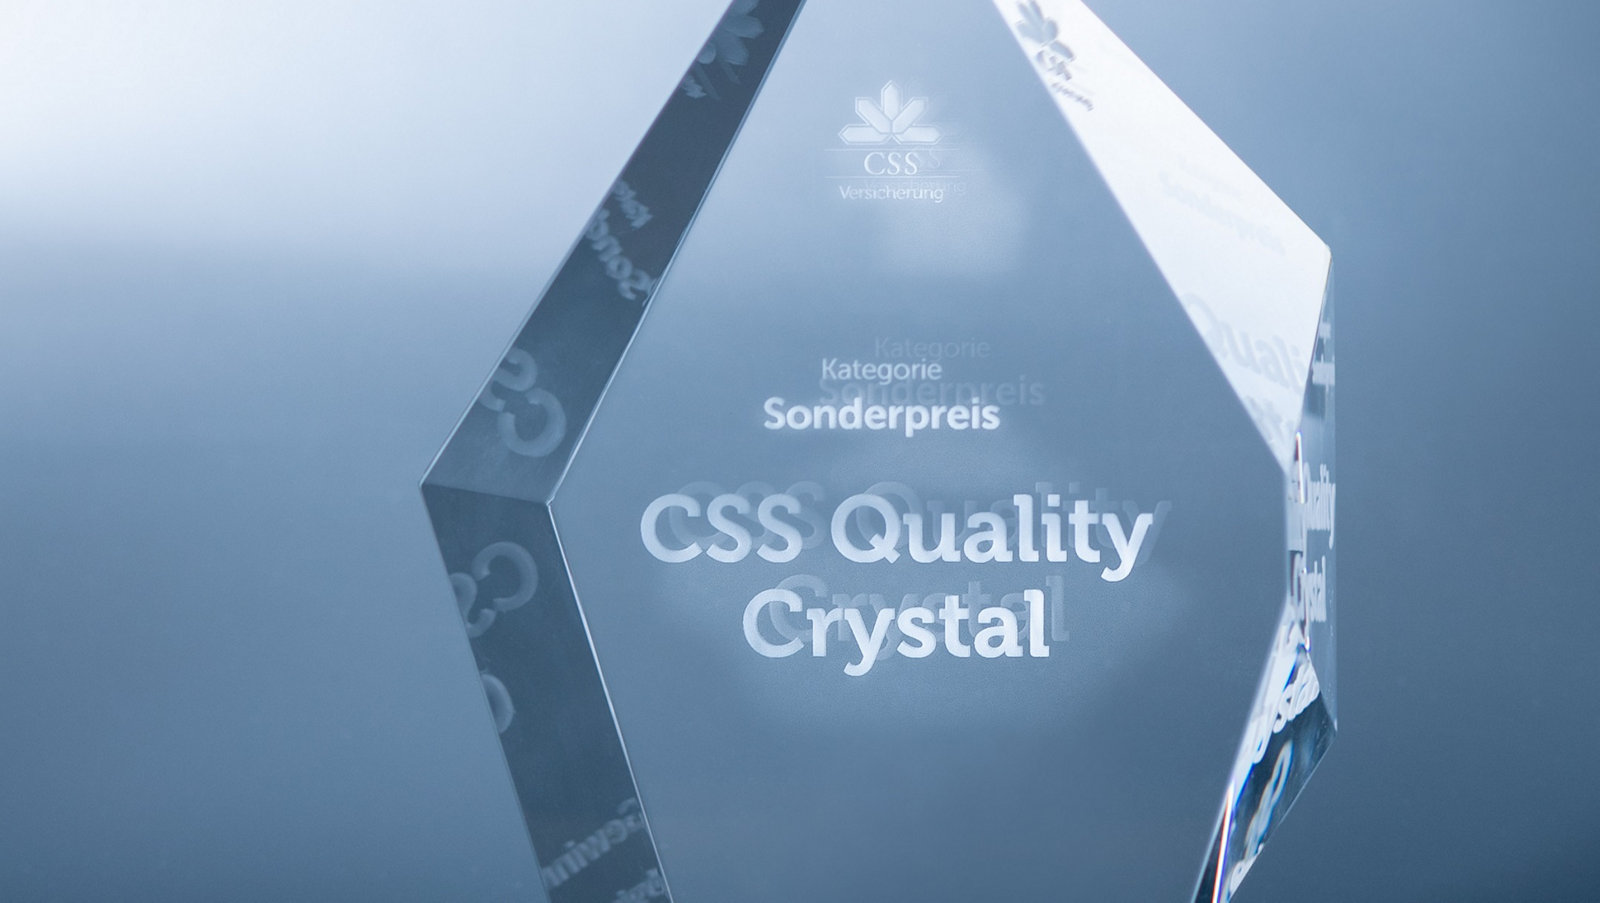 CSS Quality Crystal